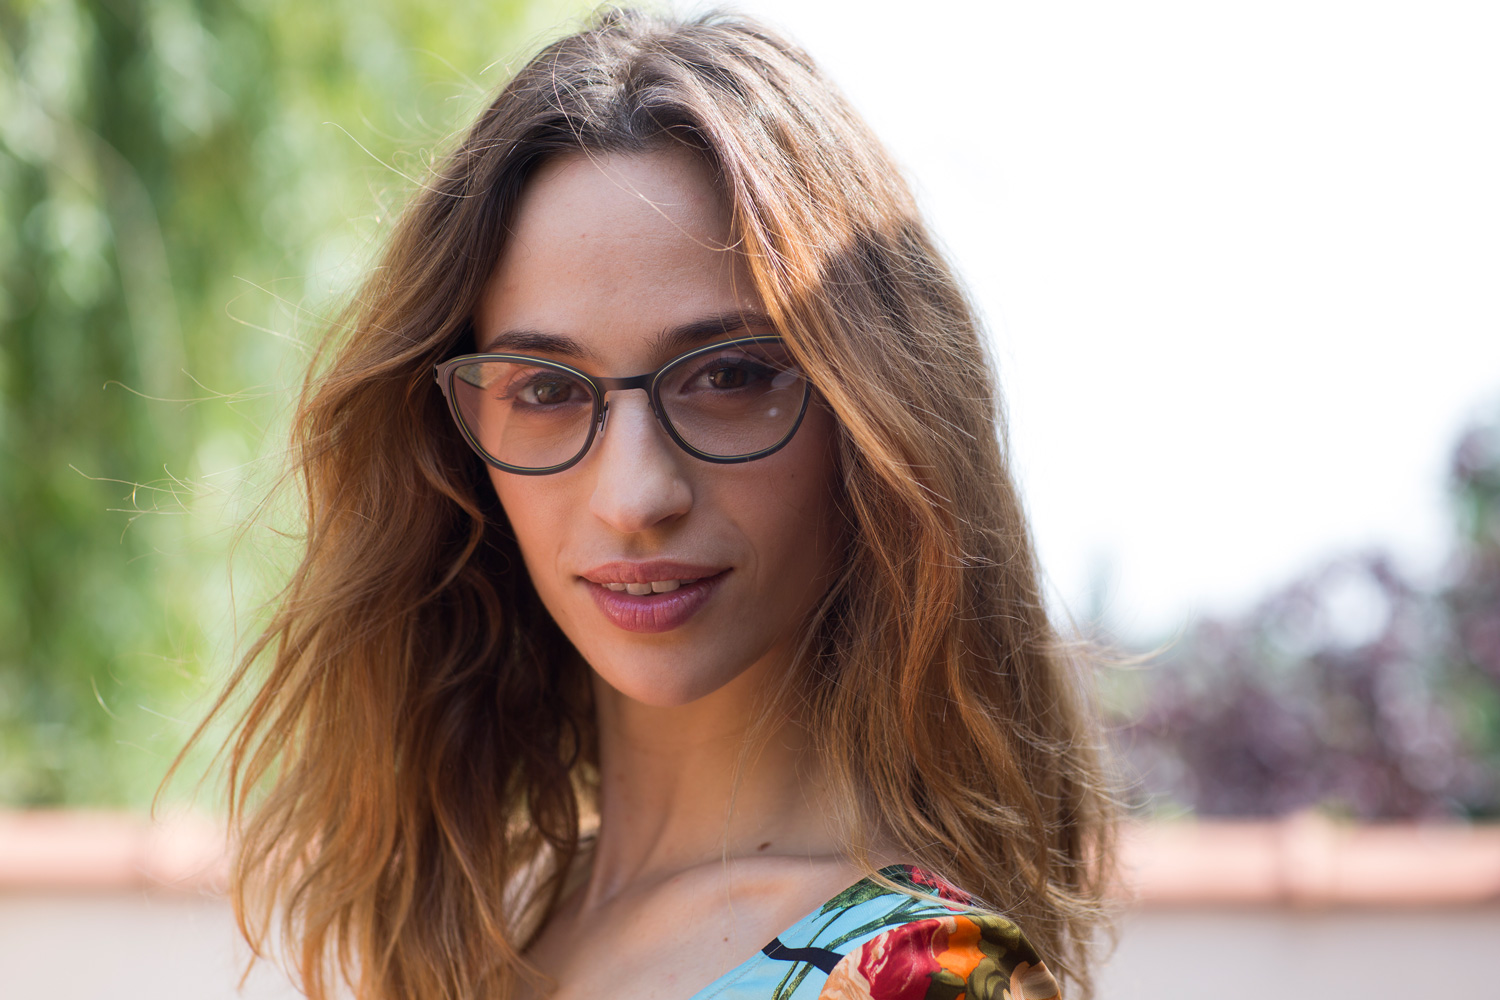 Model wearing SKA148 glasses from Nature Eyes made from recycled titanium and plant-based plastic.